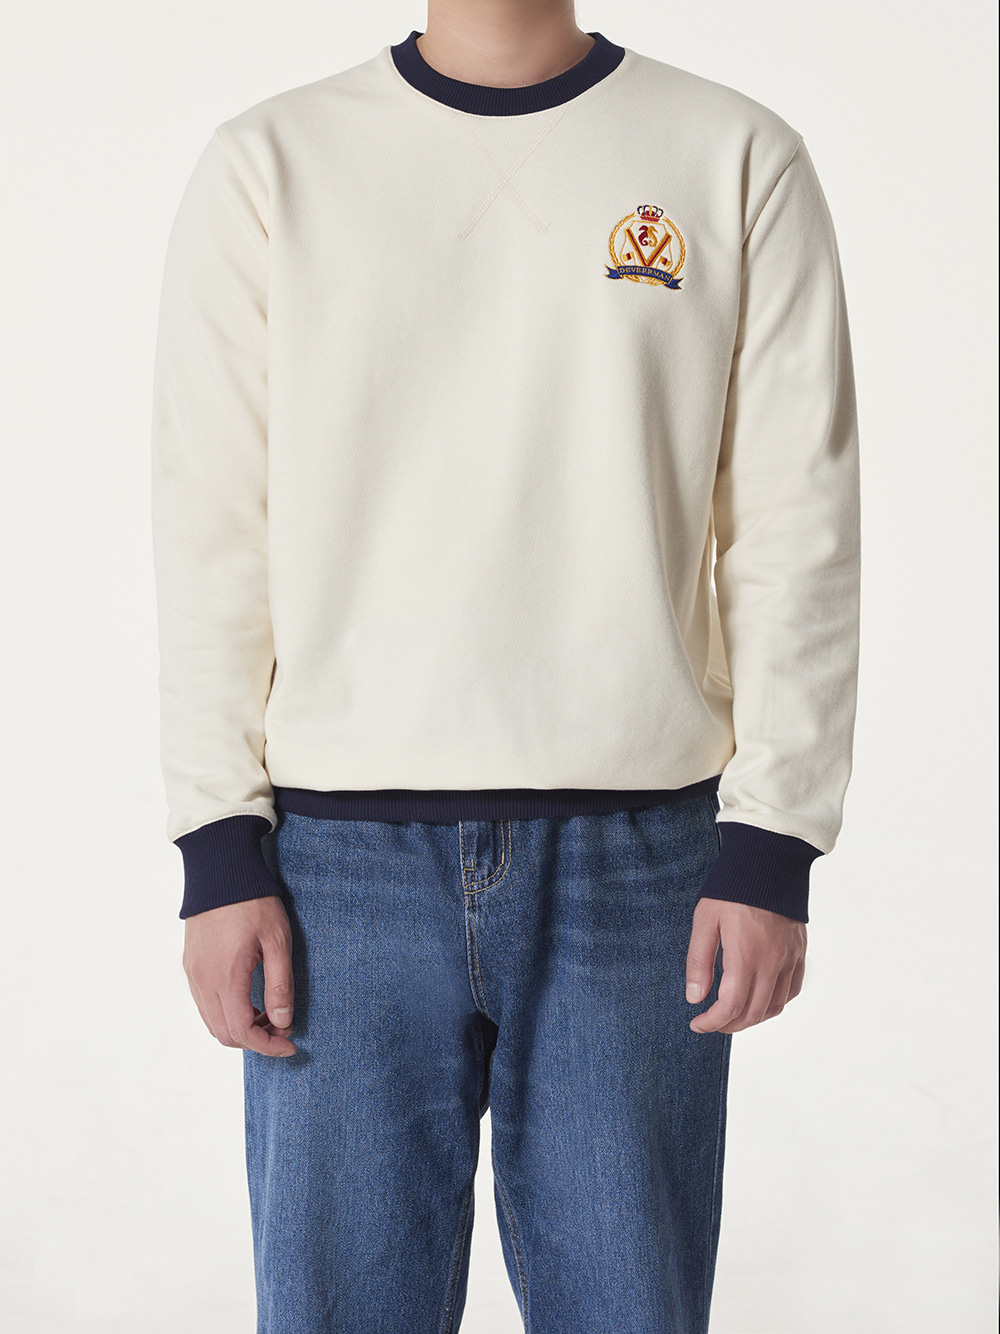 [드베르망] Deverrman emblem sweat shirt (ivory)